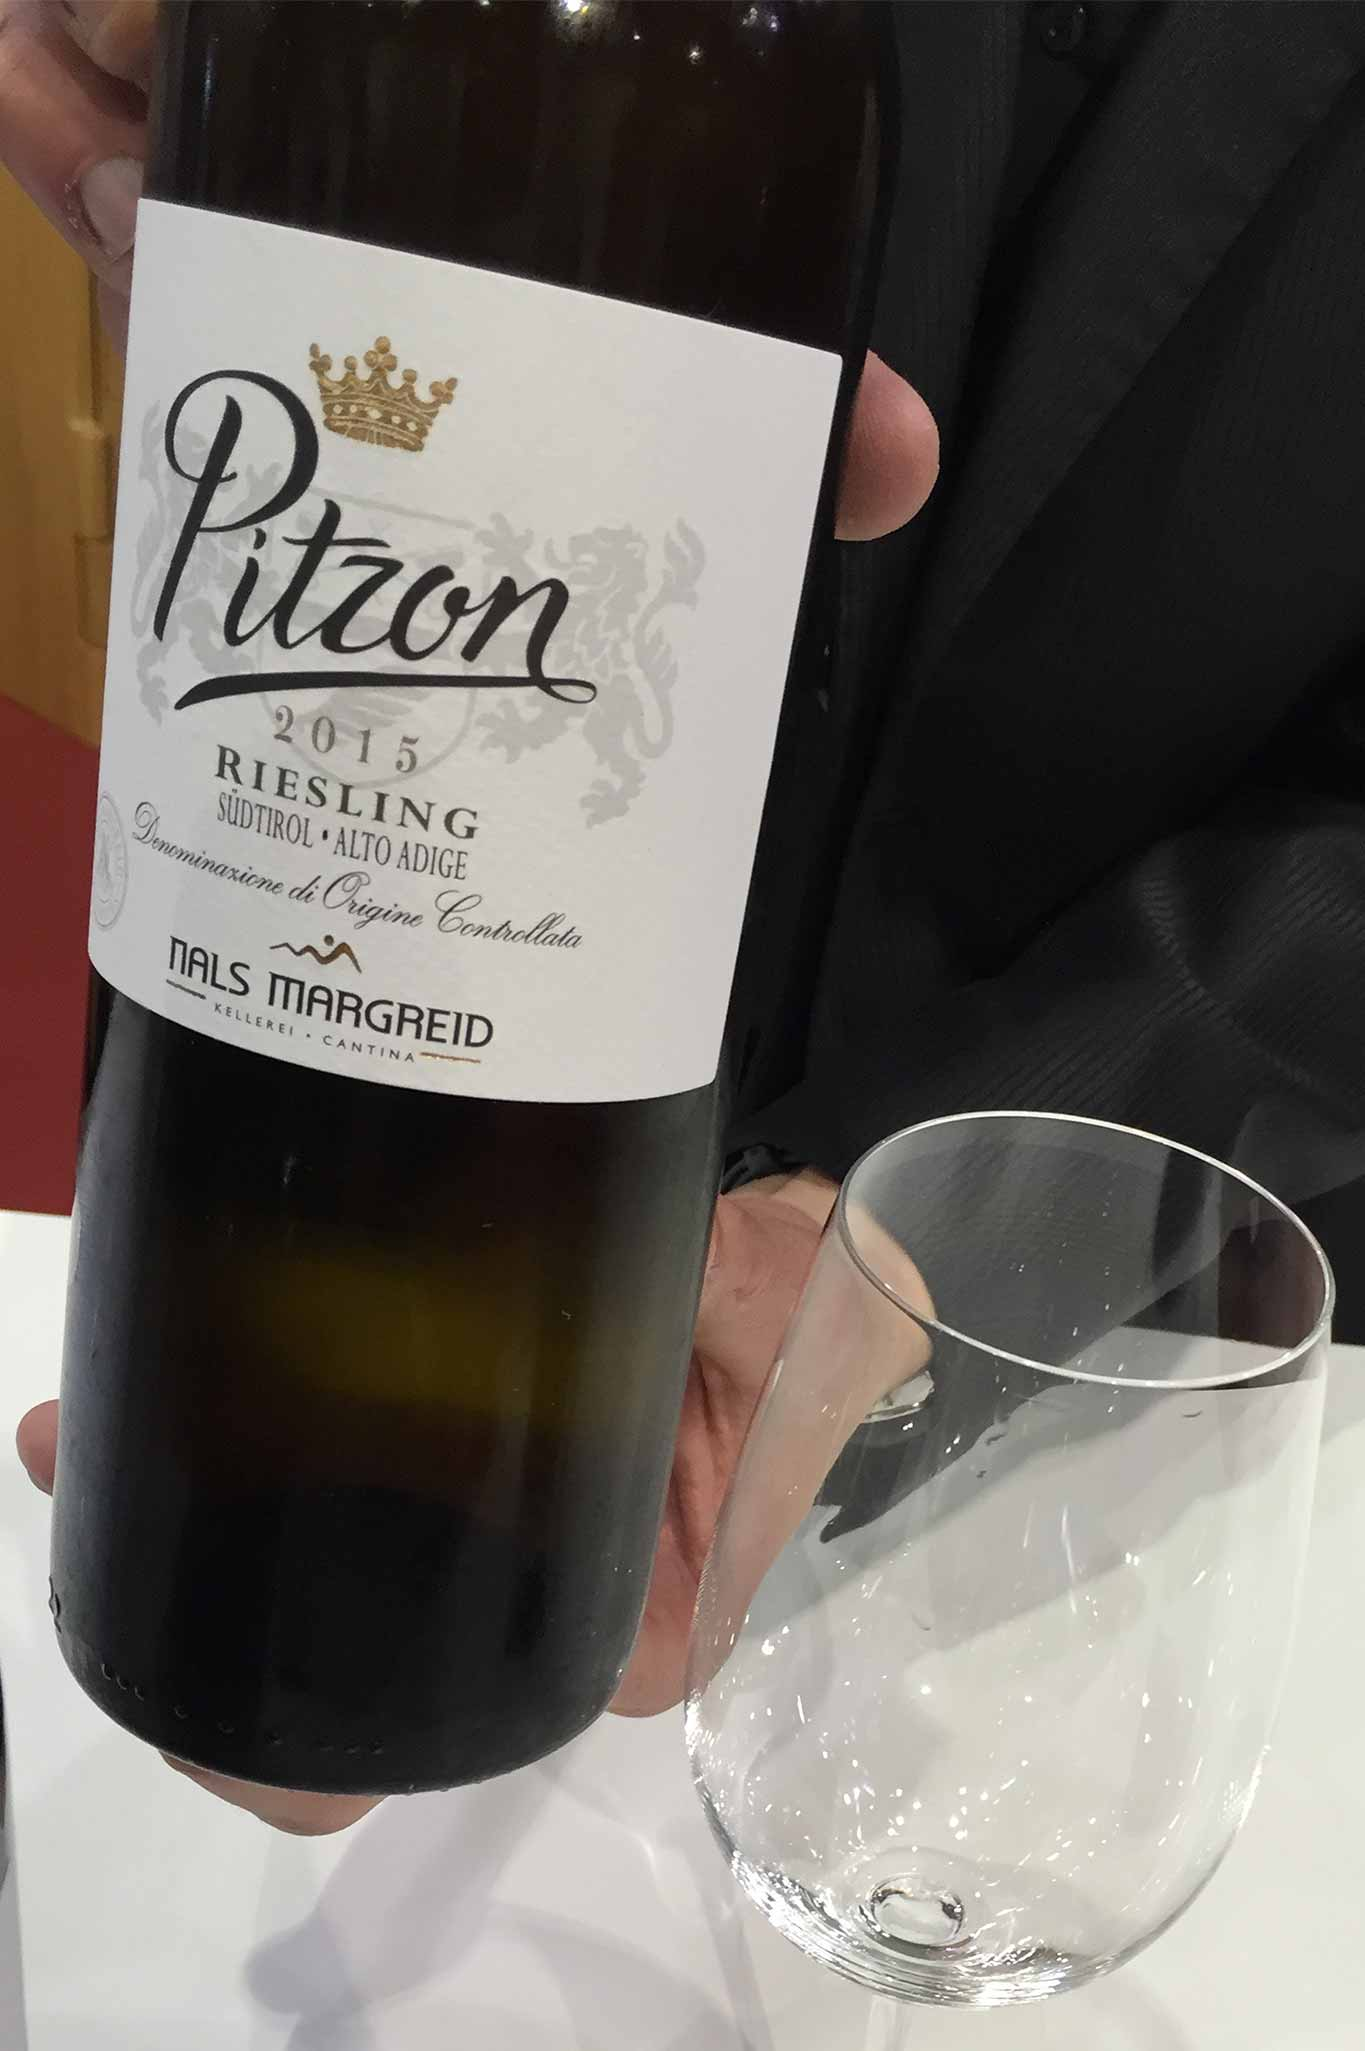 riesling-pitzon